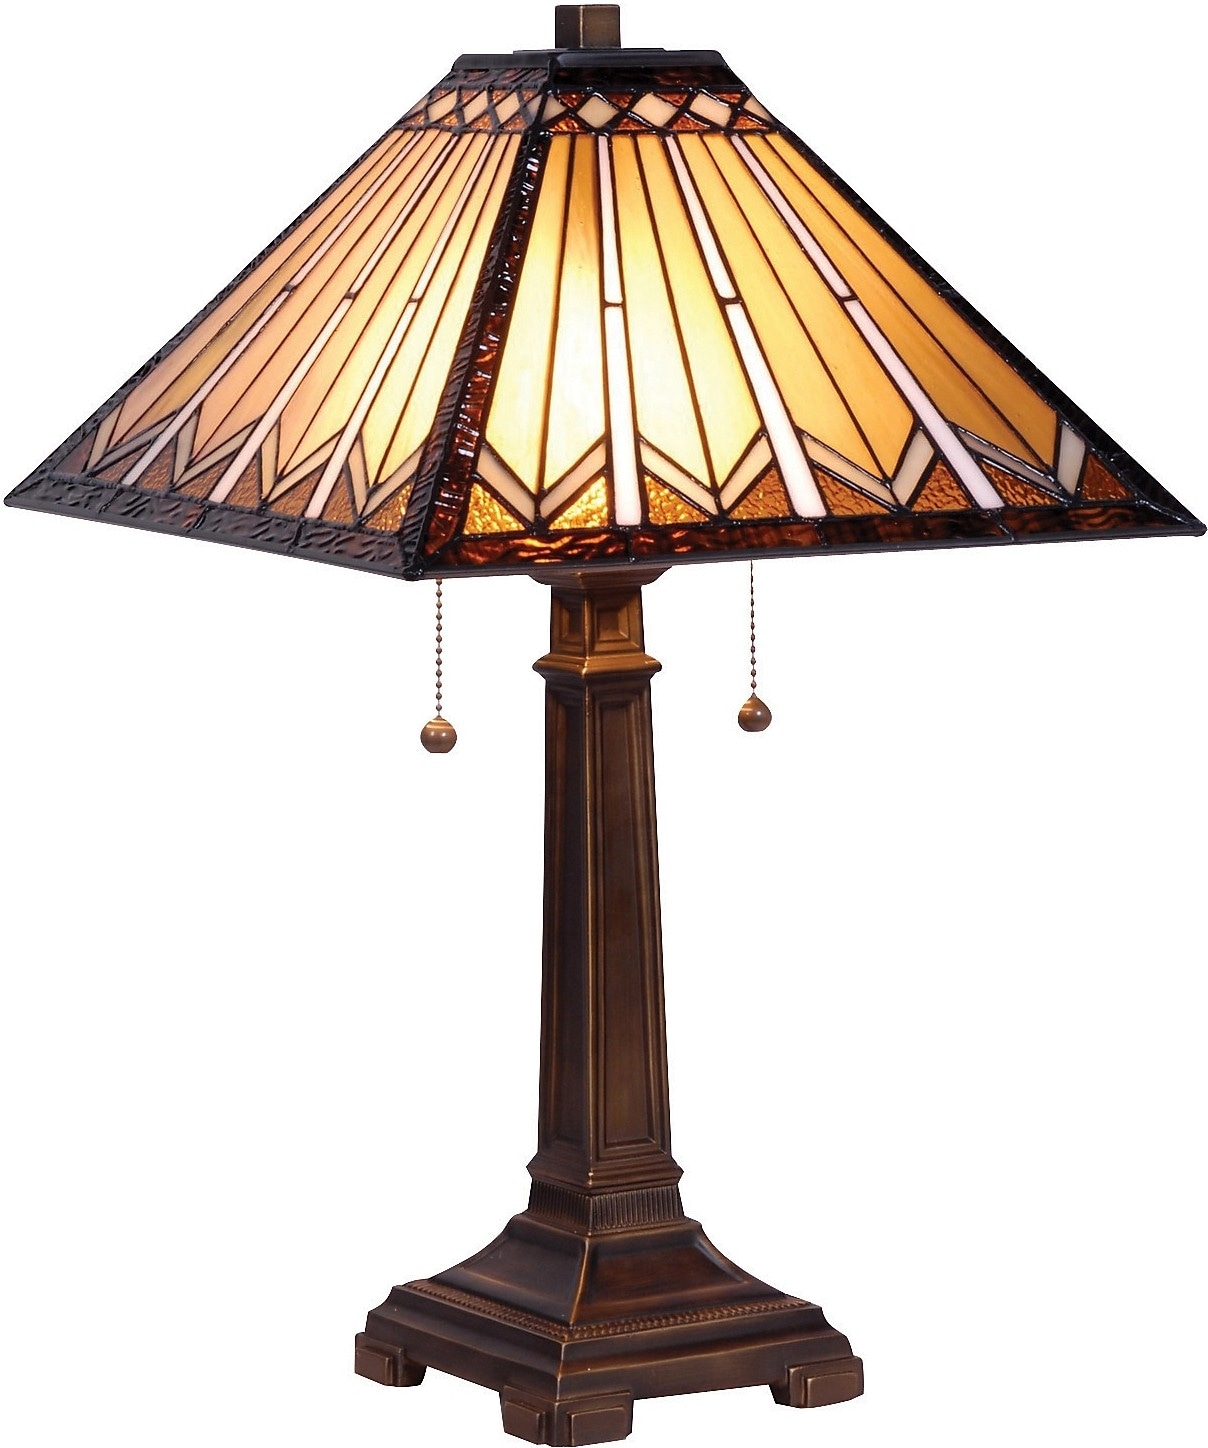 Stained Glass Wall Lamp Shades : Danbury Table Lamp with Stained Glass Shade The Brick